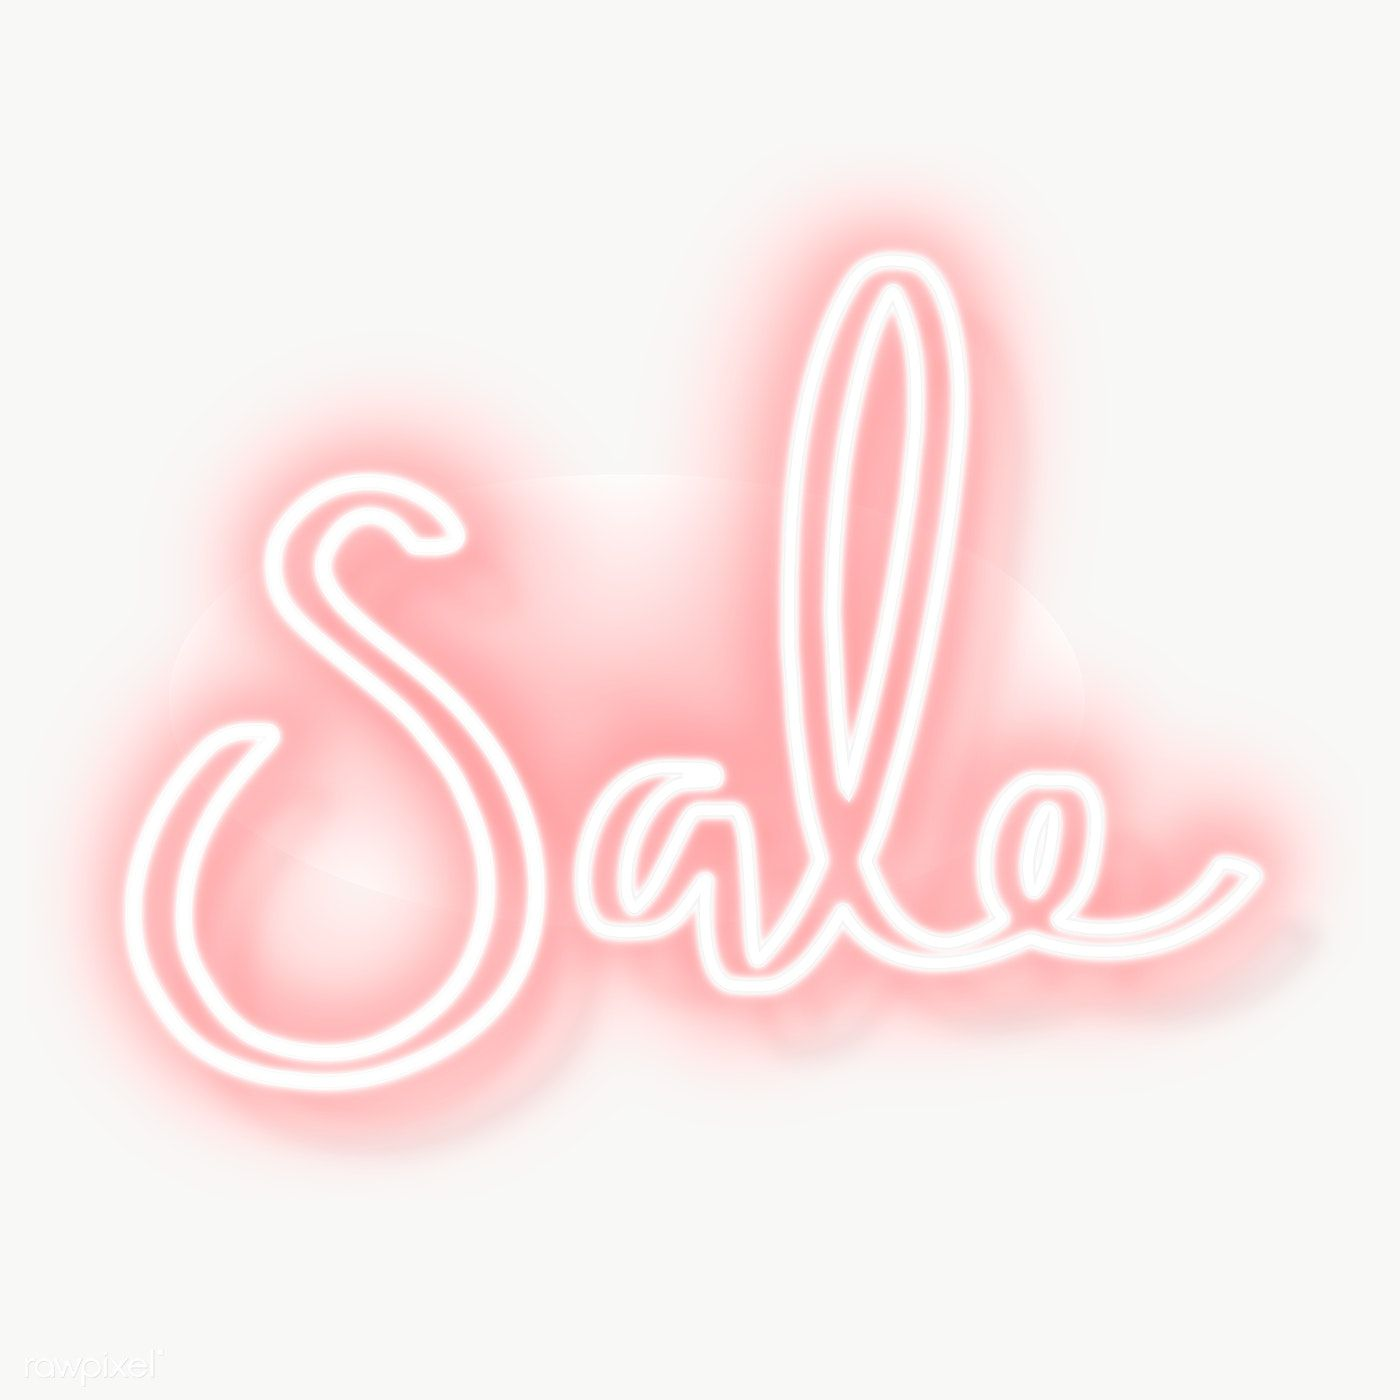 Pink Sale Neon Sign Transparent Png Free Image By Rawpixel Com Aew Neon Signs Neon Pink Sale